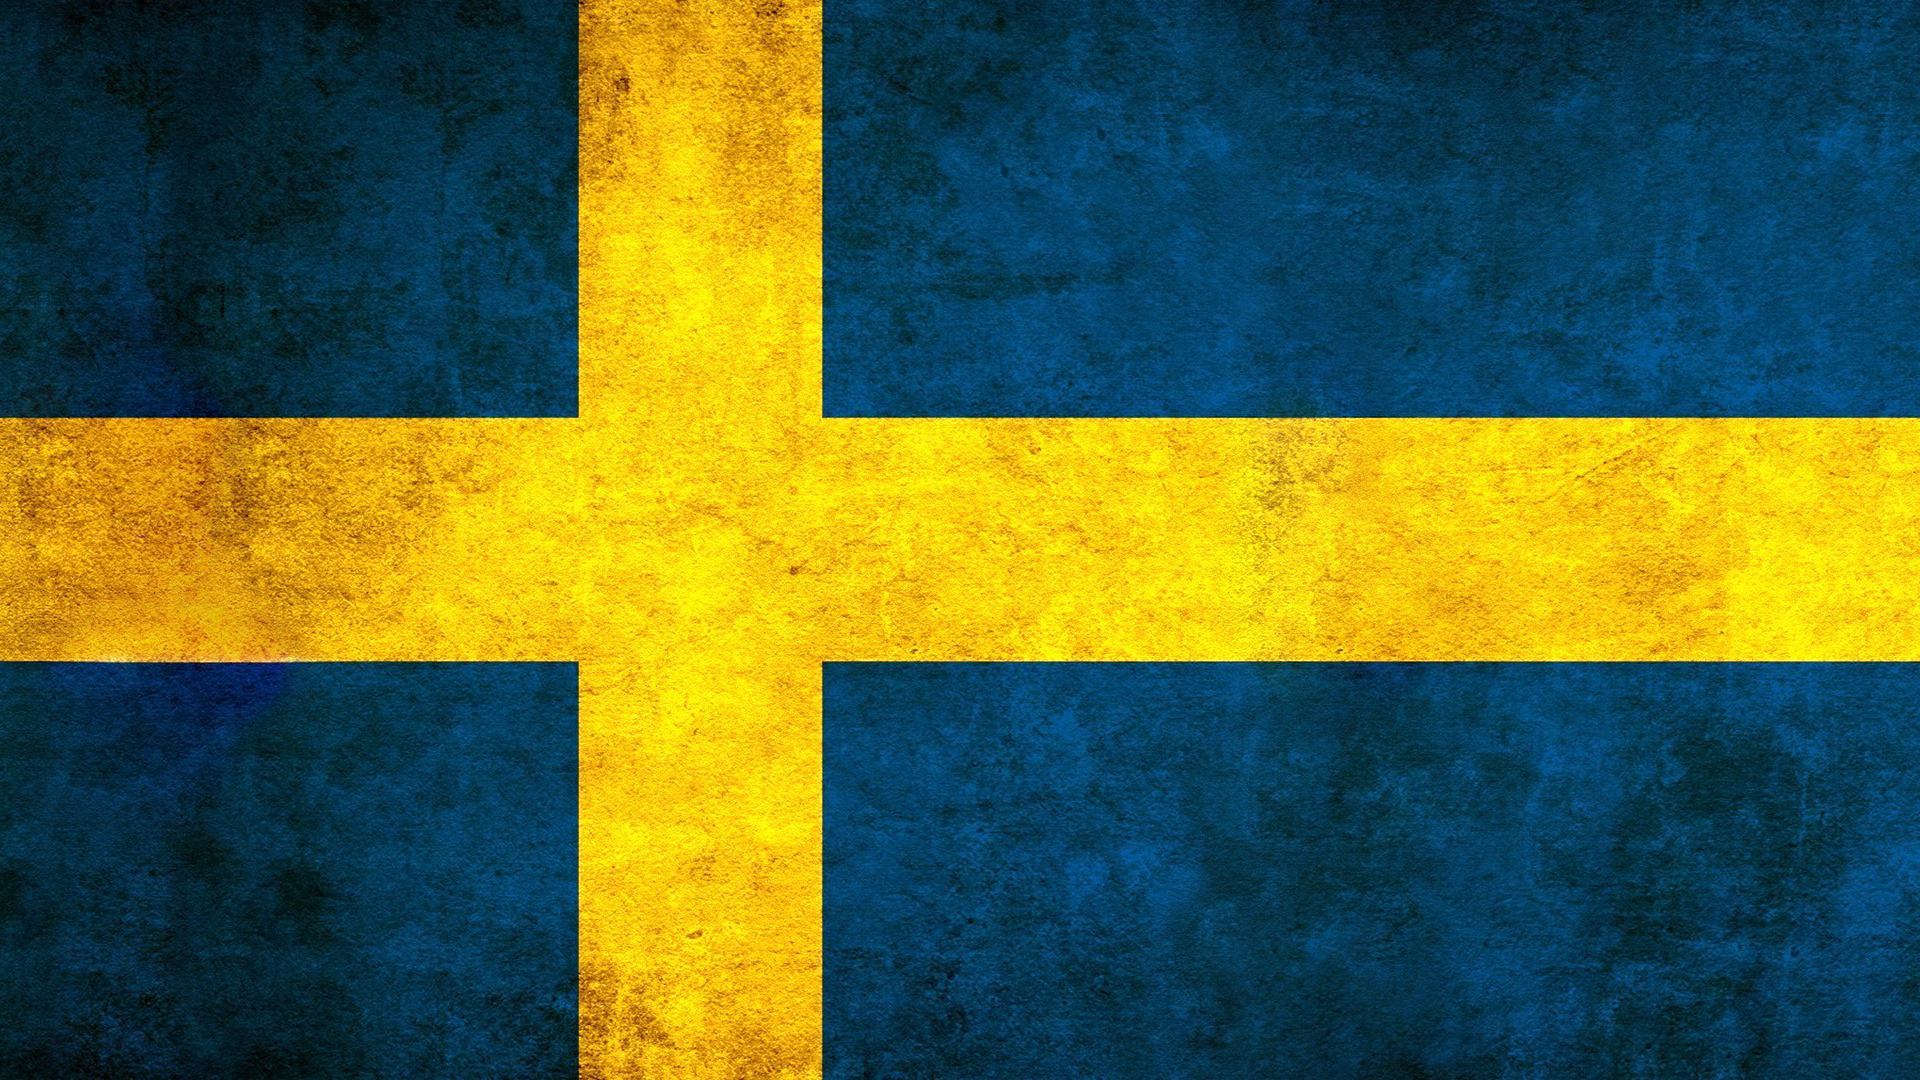 Flag Of Sweden HD Wallpaper Background Image 1920x1080 ID 1920x1080